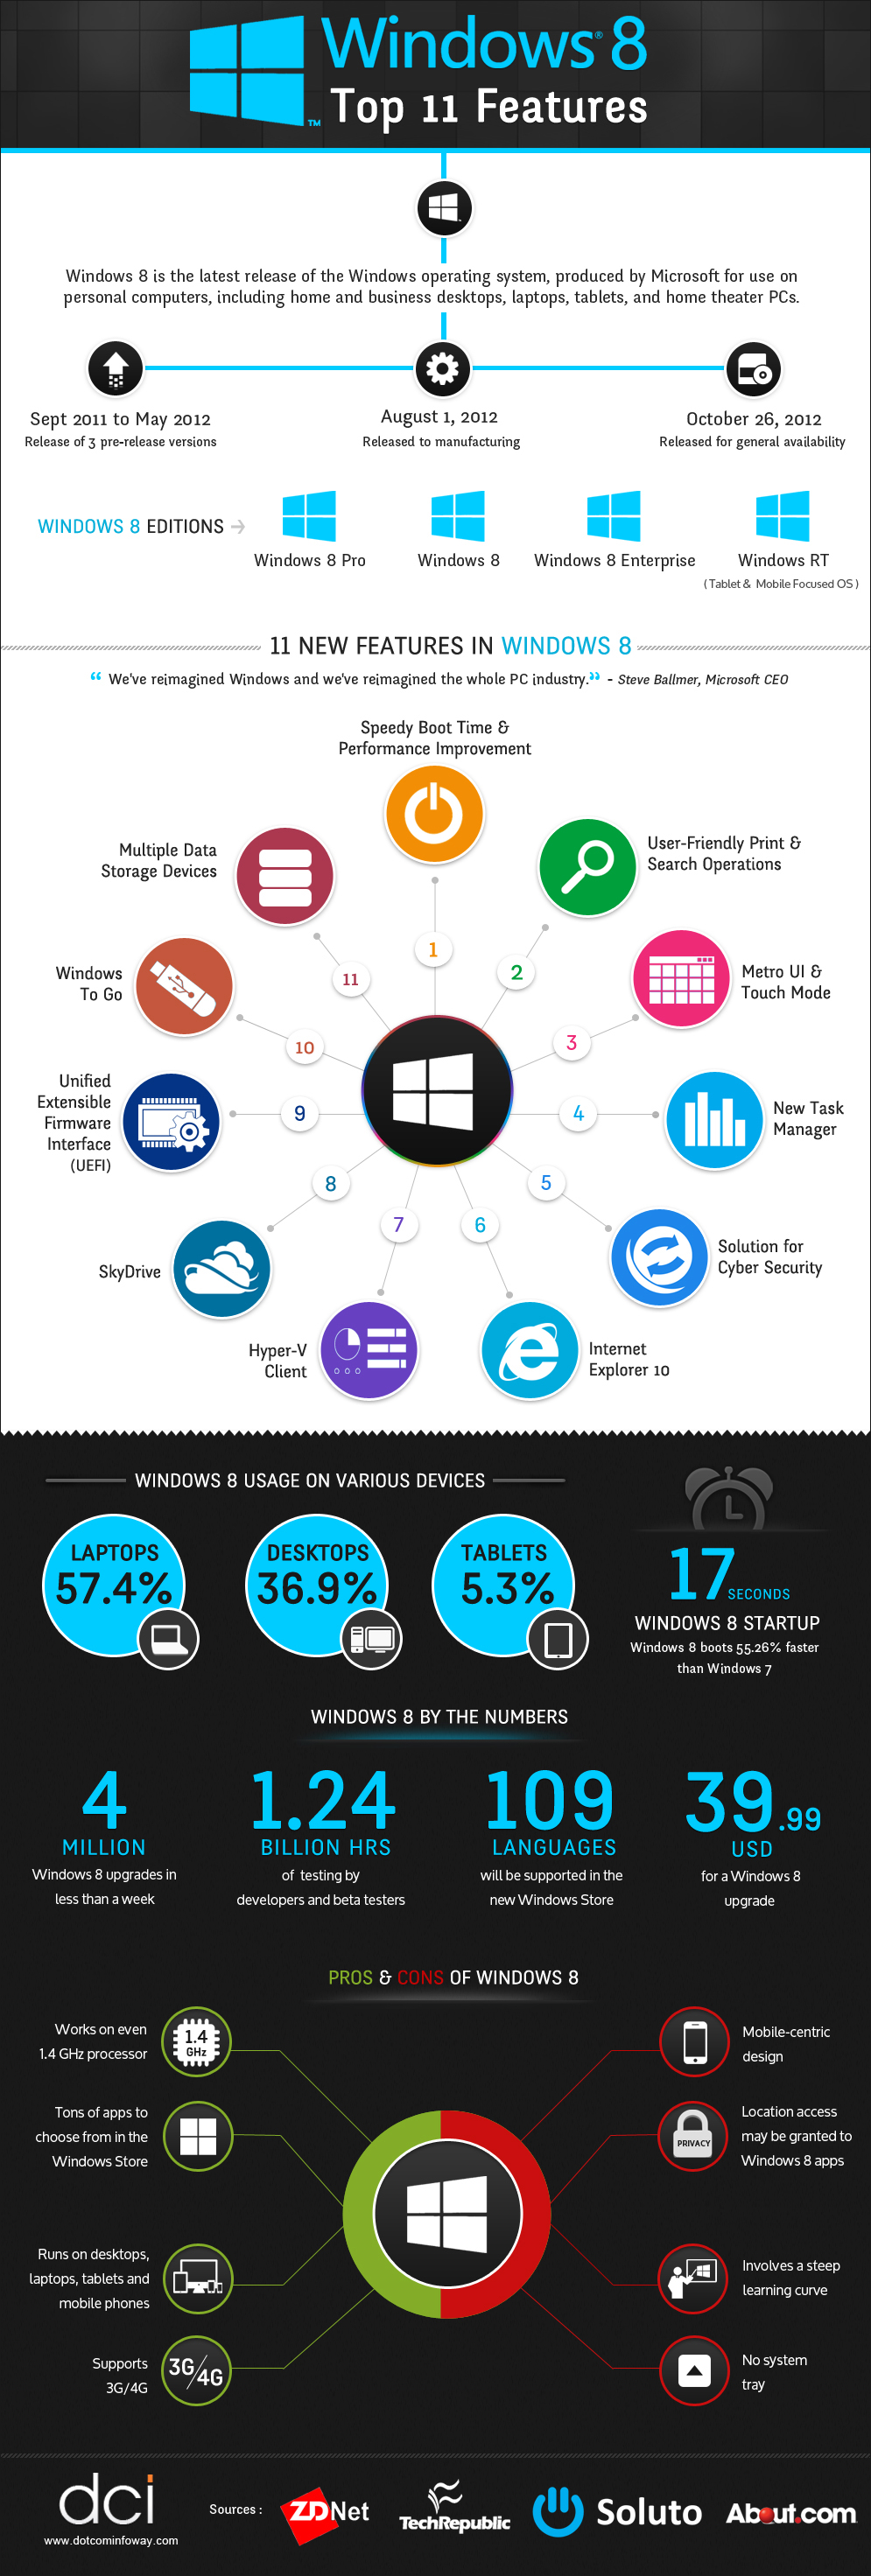 Infographic on Top 11 Windows8 Features